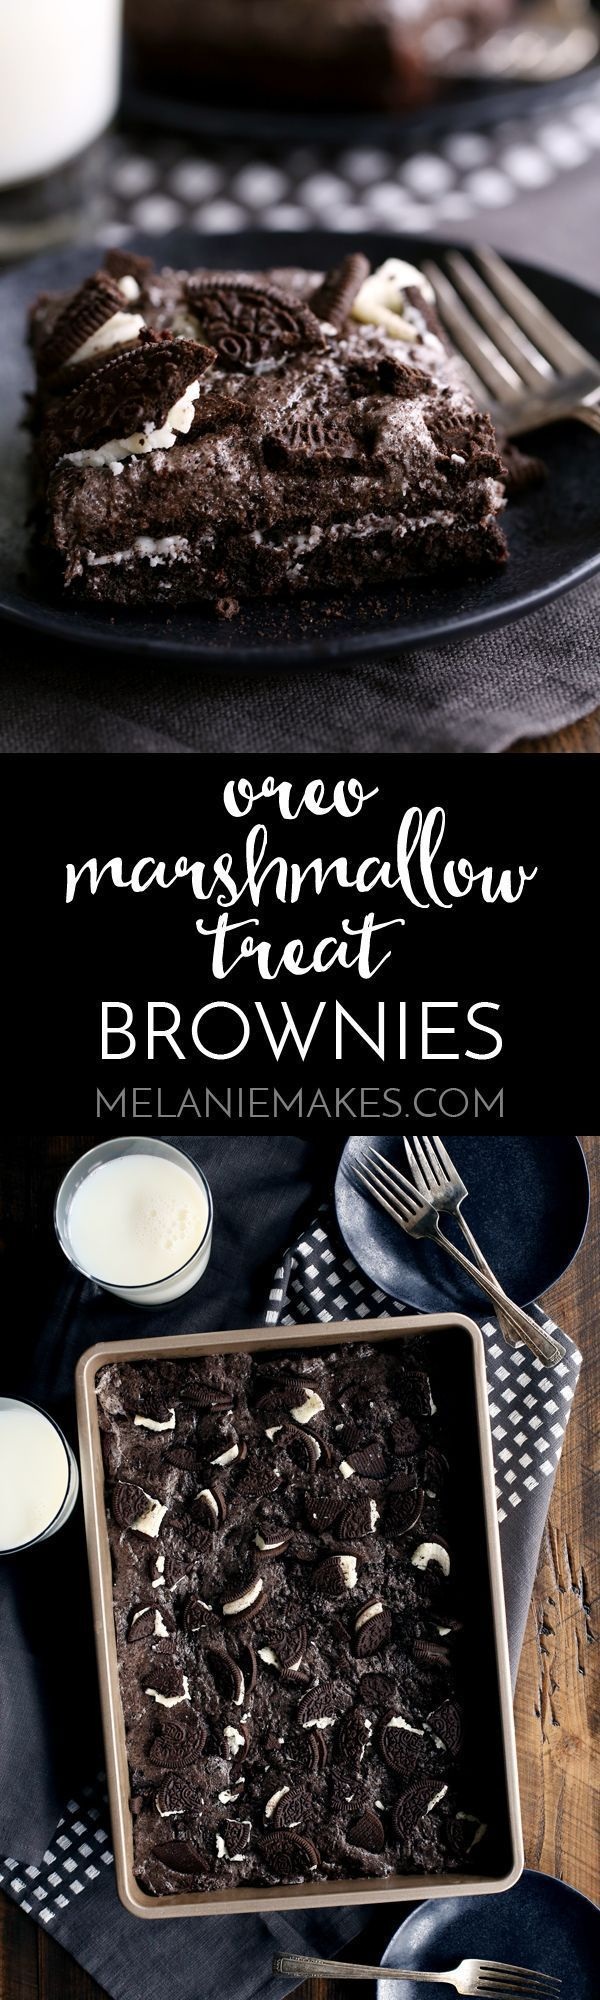 These Oreo Marshmallow Treat Brownies are what Oreo lovers dream about. A single pan of brownies that includes TWO packages of Double Stuf Oreos. Chocolate fudge brownies are topped with a layer of Oreos before being baked and then topped with an Oreo mar